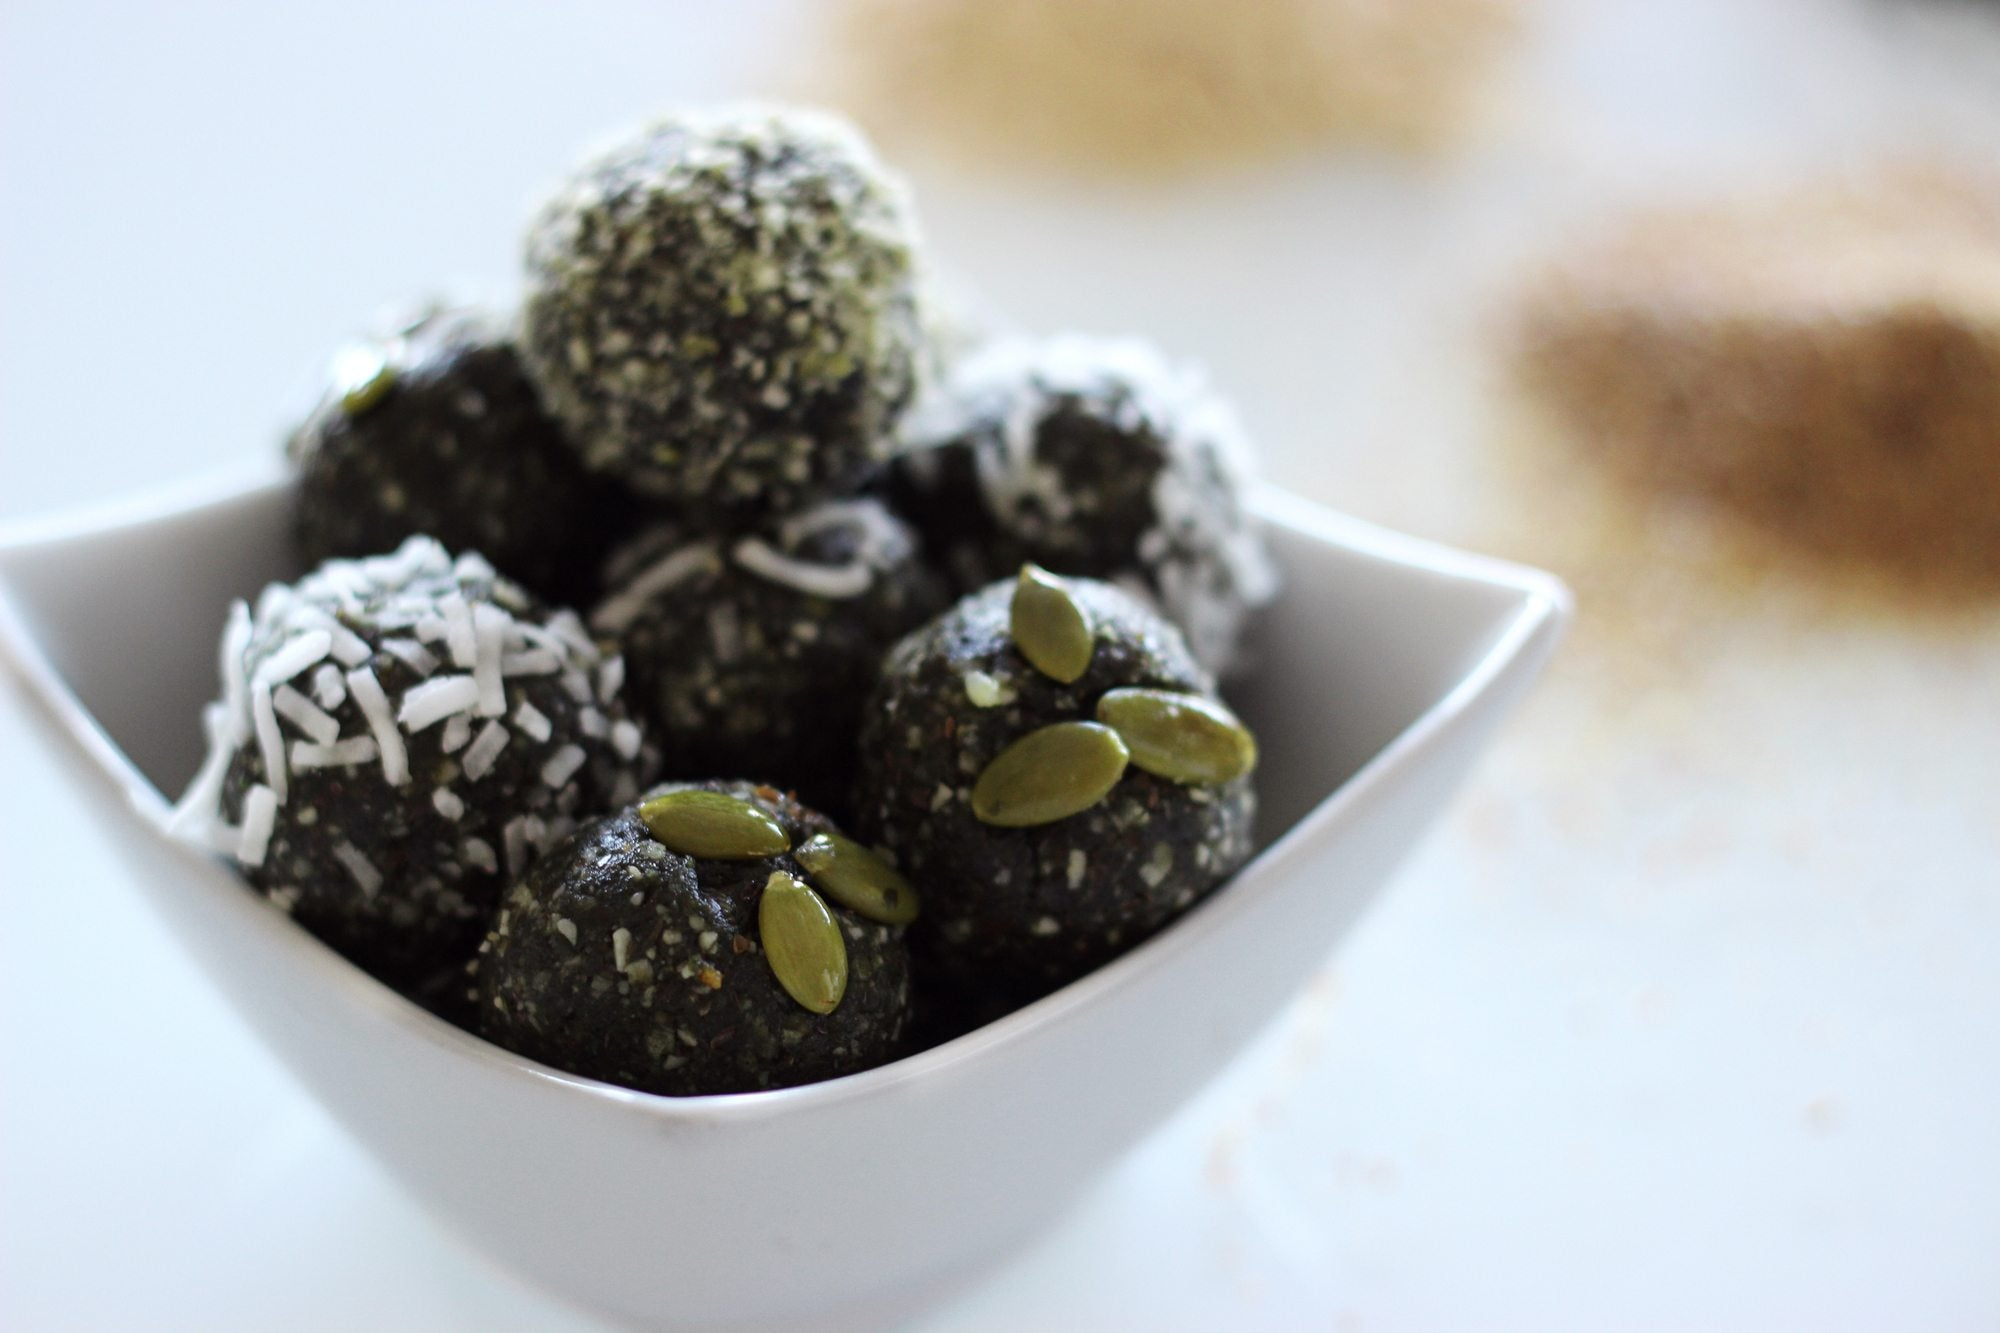 spirulina globes are a delicious way to get the benefits of spirulina in